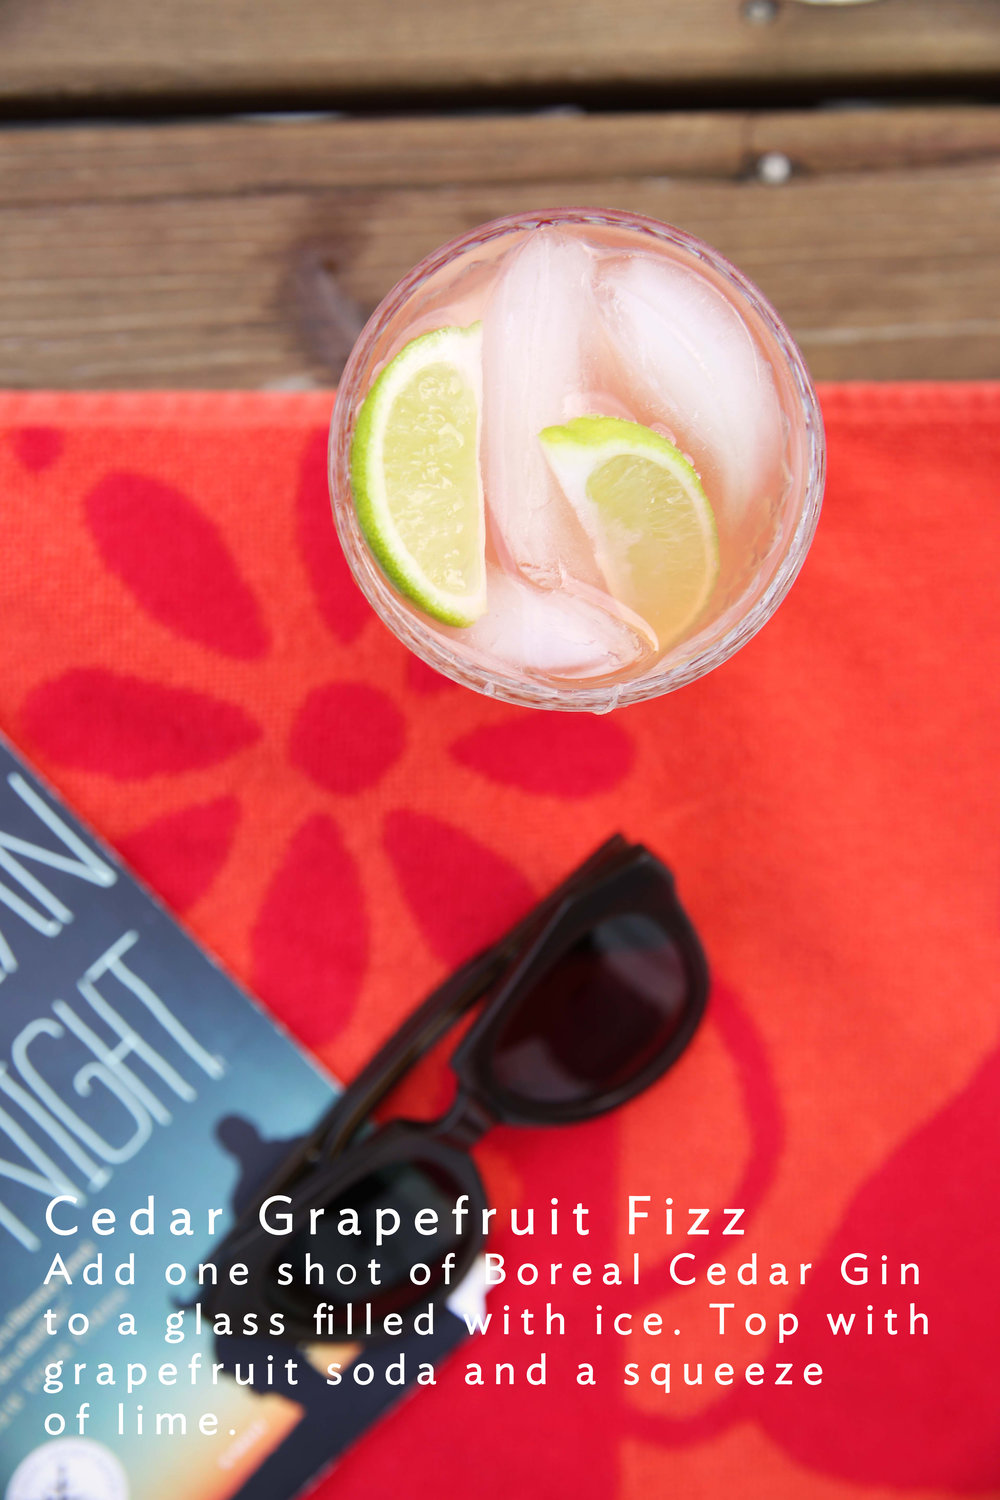 cedar grapefruit fizz copy.jpg